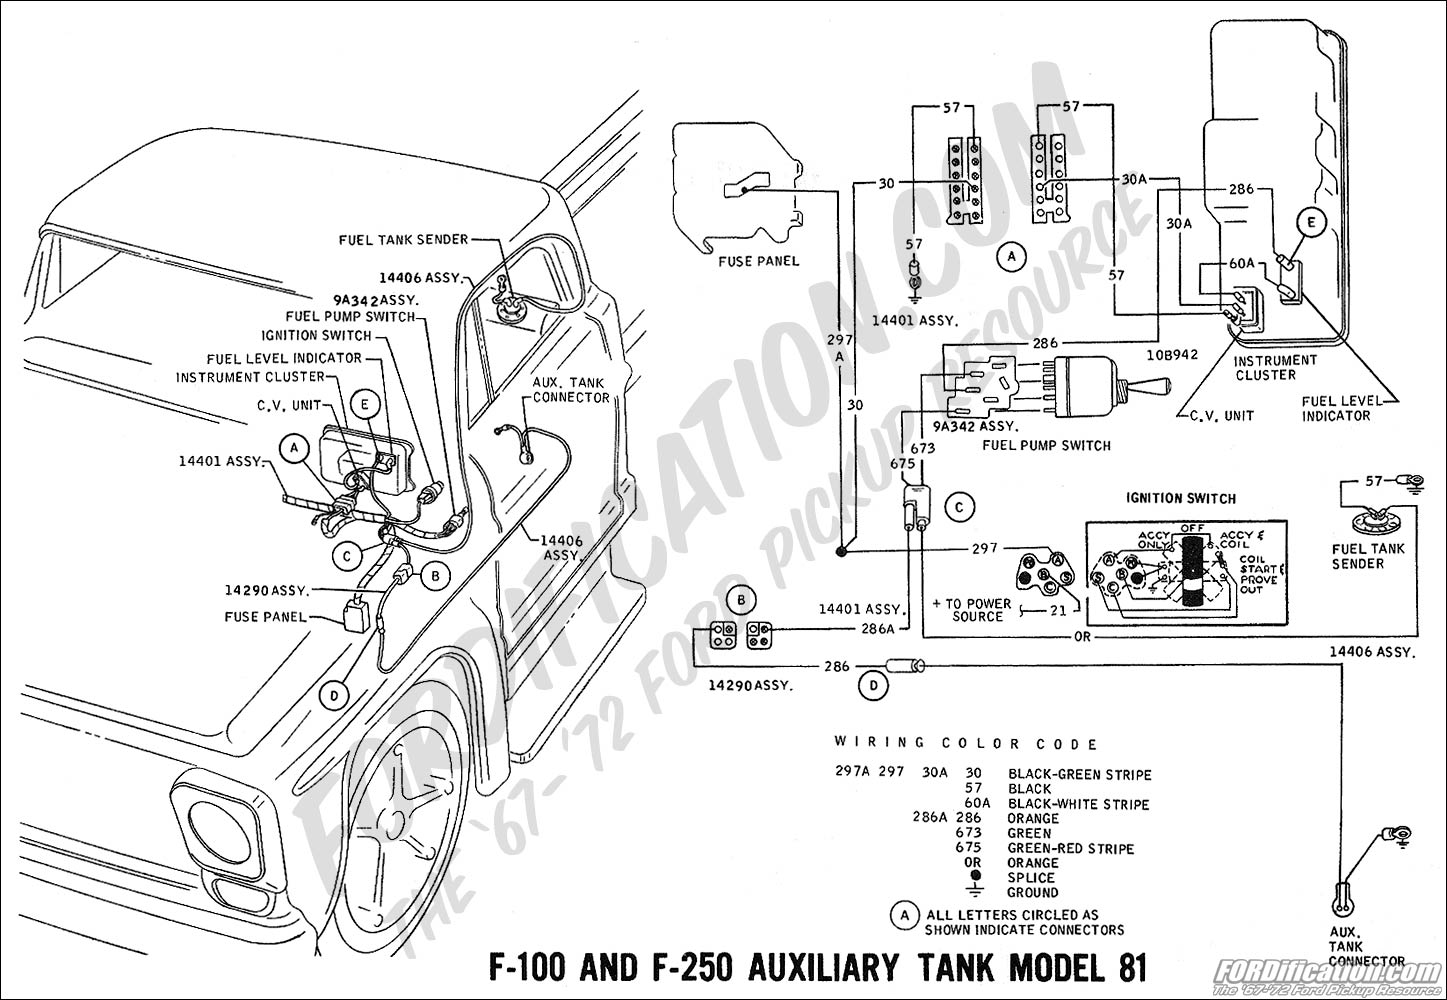 wiring_69aux fuel ford truck technical drawings and schematics section h wiring 1988 ford f250 fuse panel wiring diagram at gsmportal.co